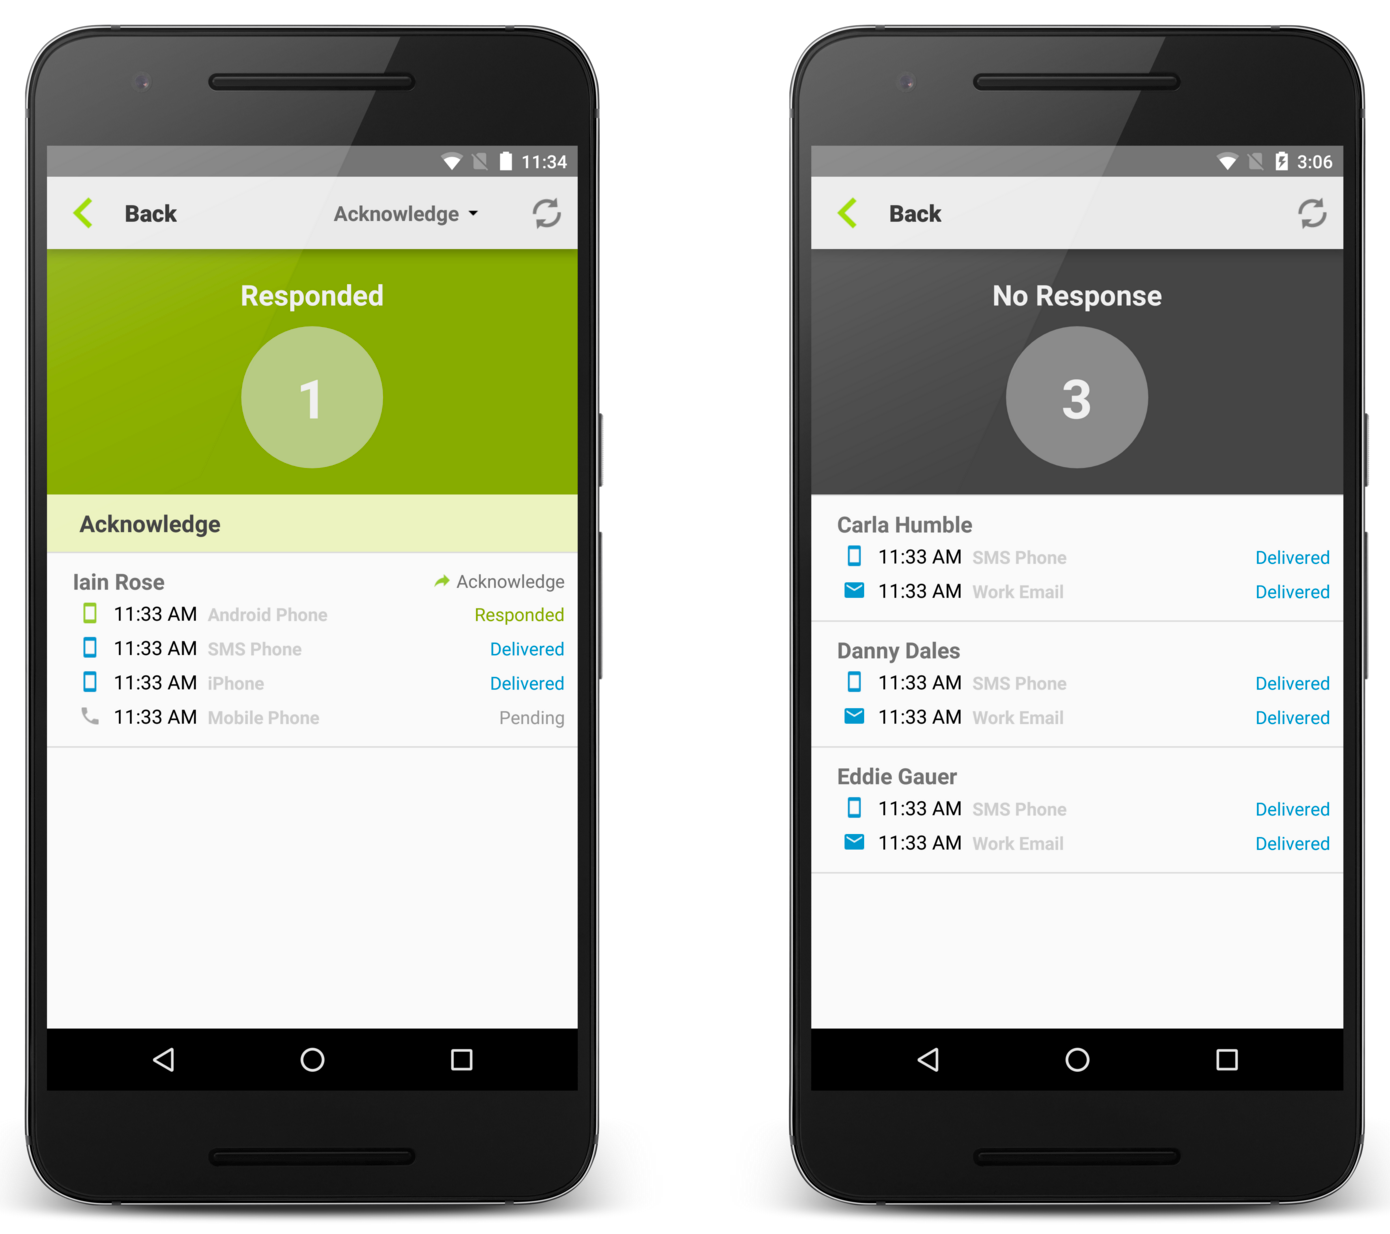 Filter Recipients By Responses for the Android app